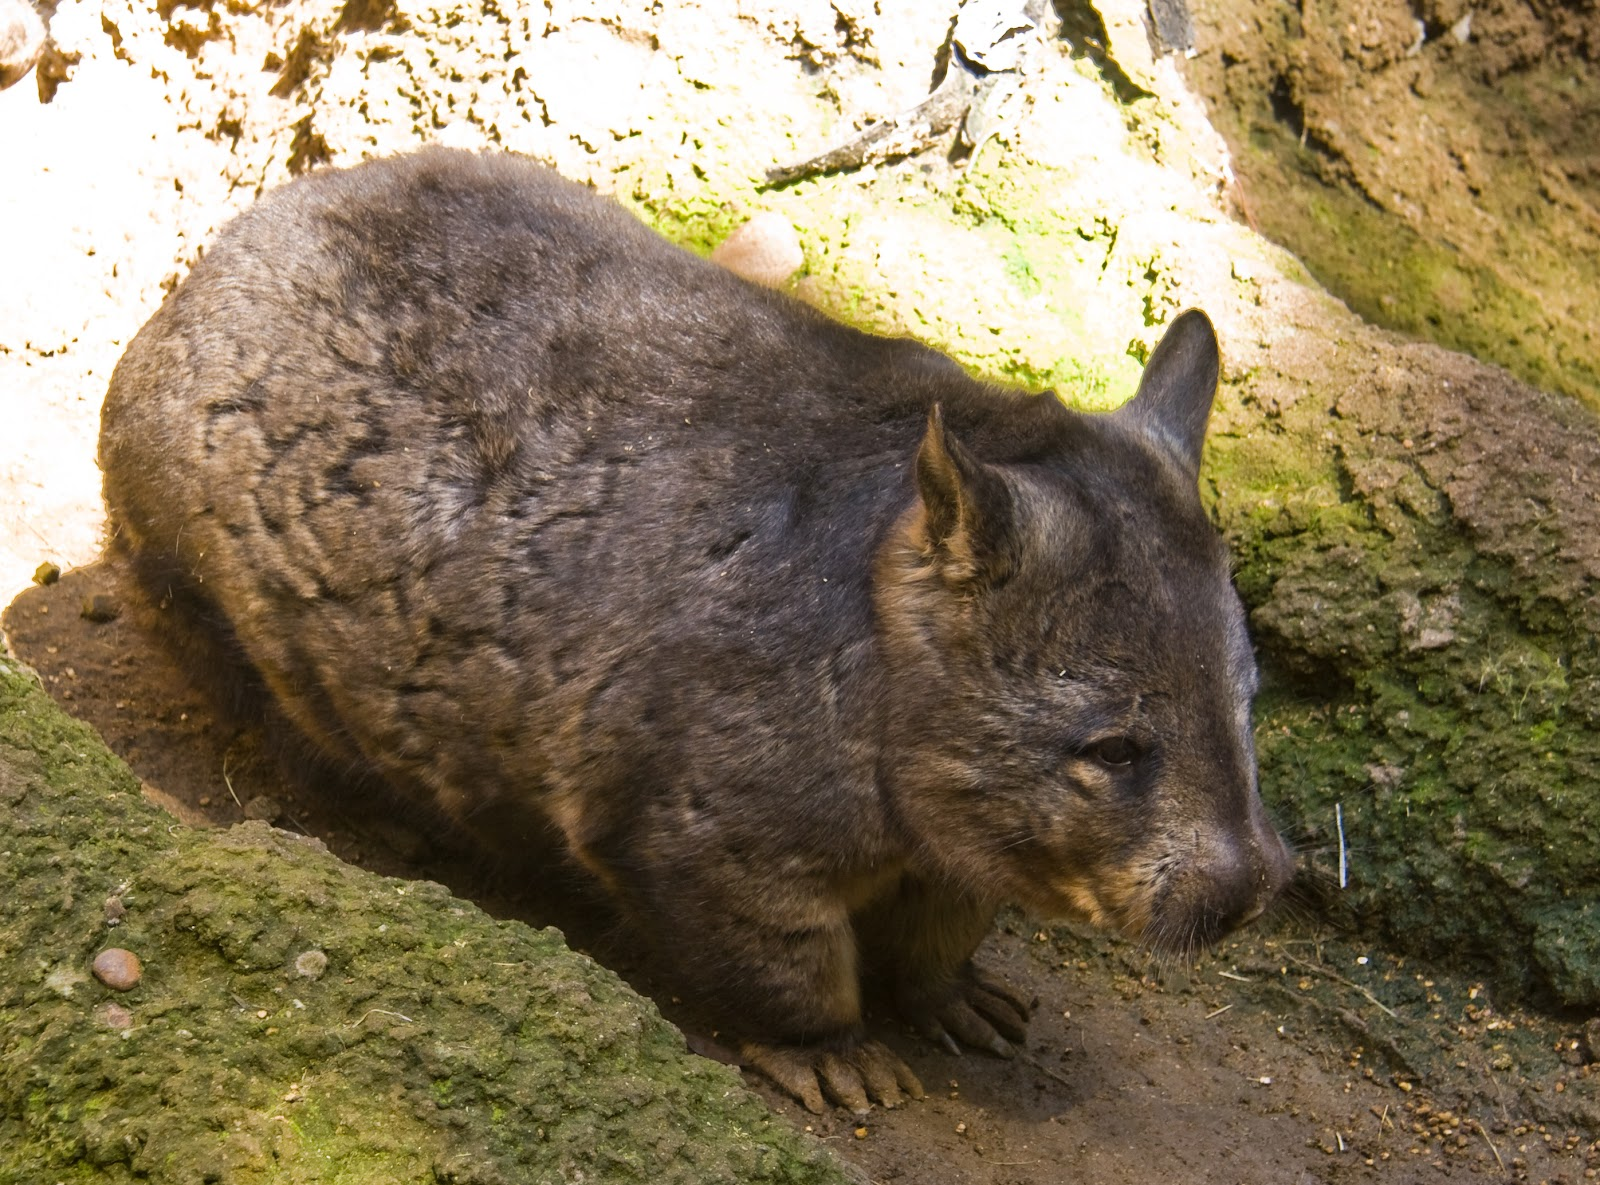 Wombat Wallpapers & Images | Fun Animals Wiki, Videos ...